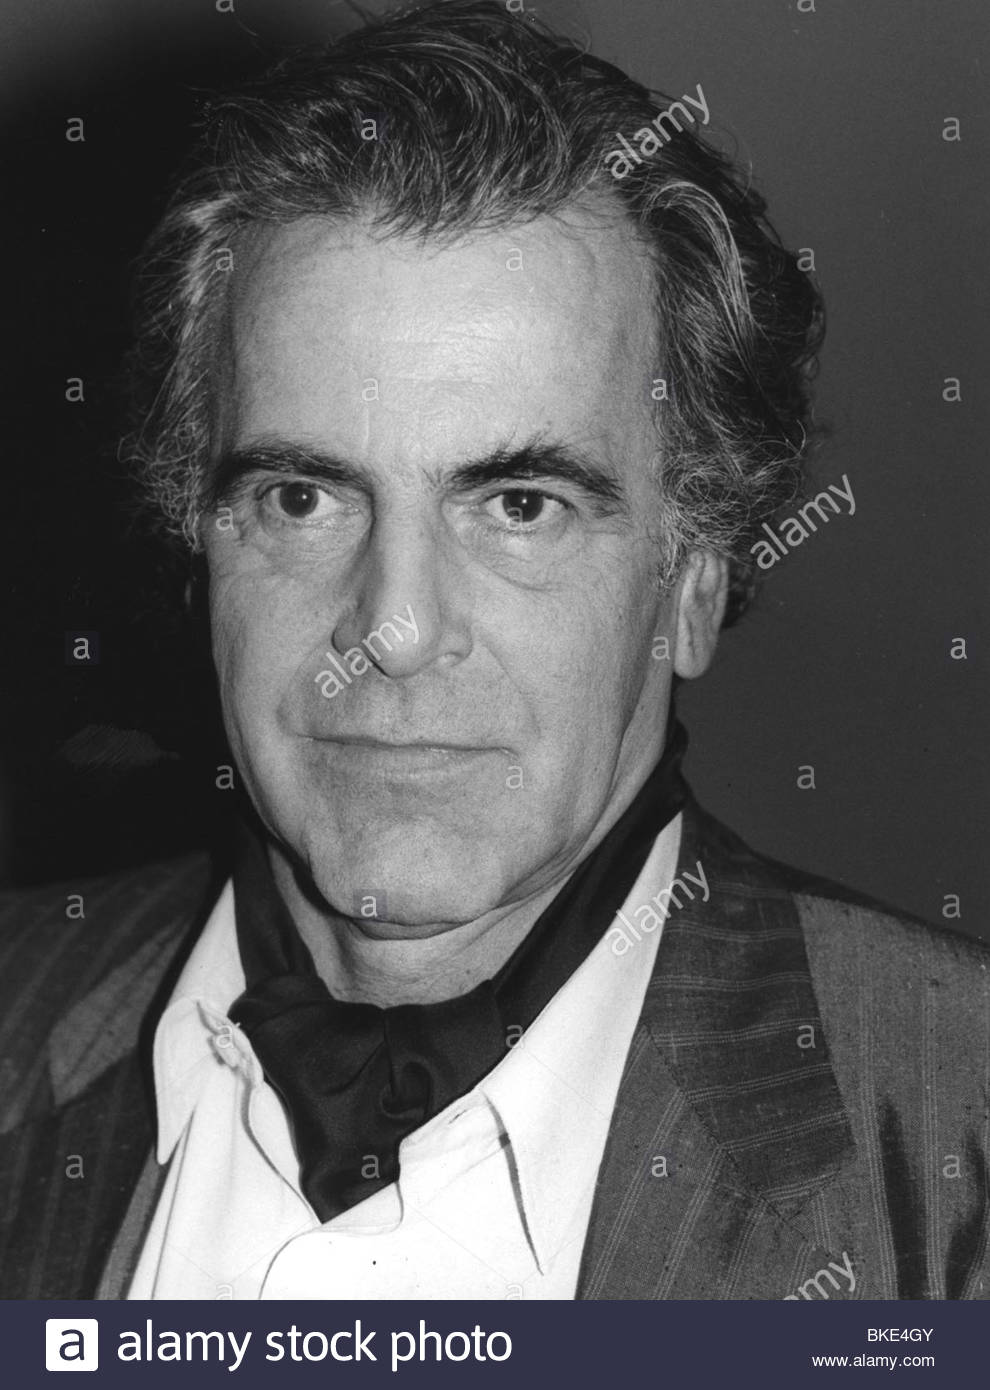 Schell, Maximilian, * 8.12.1930, German actor, portrait, at a press conference, 1980s, neckerchief, neck scarf, - Stock Image